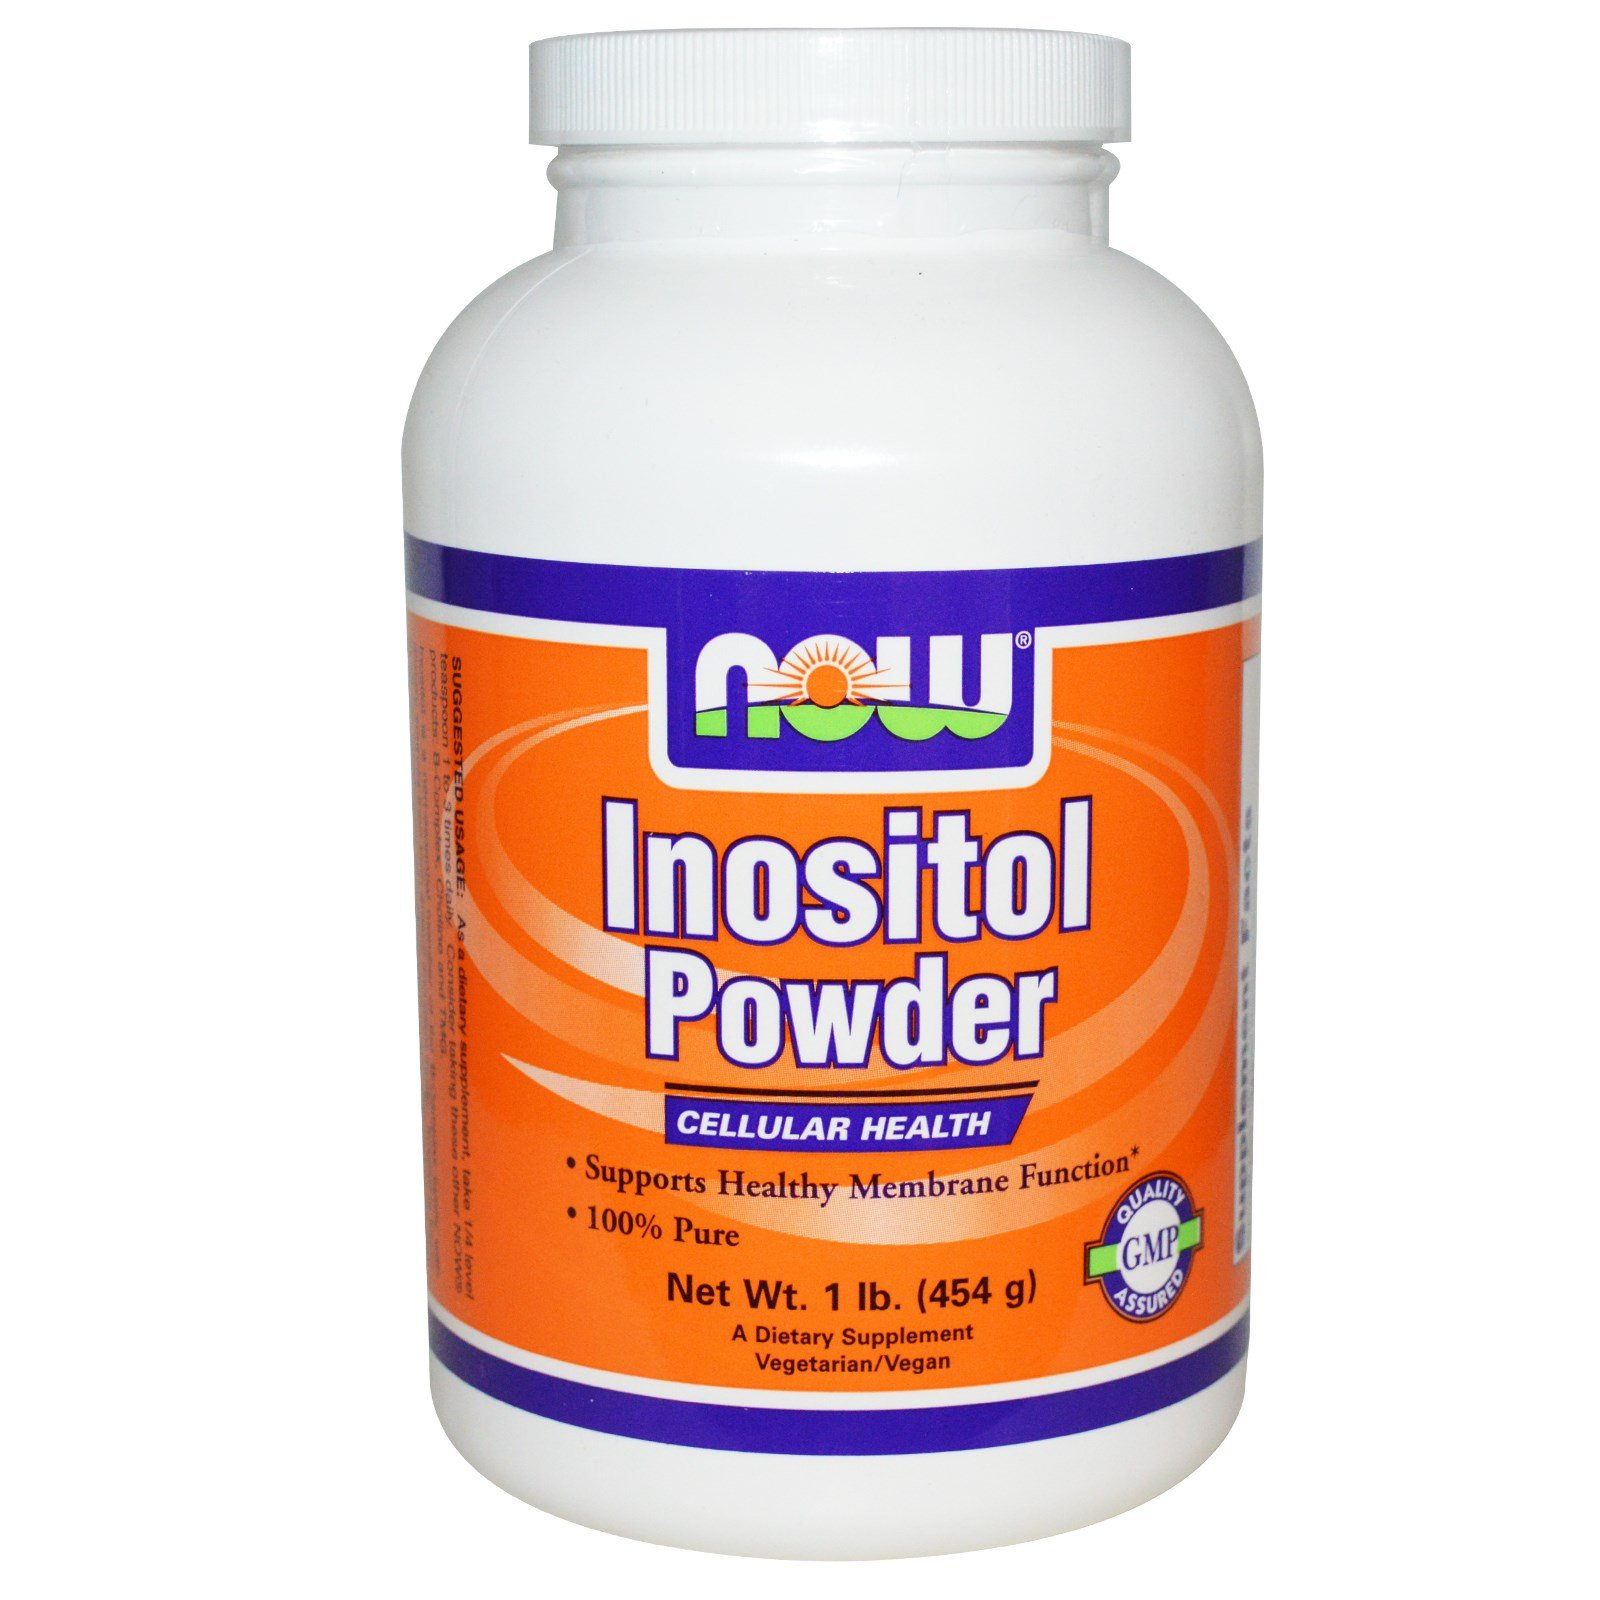 100% Pure Inositol Powder - 1 Lb - Powder-2 Pack by NOW Foods